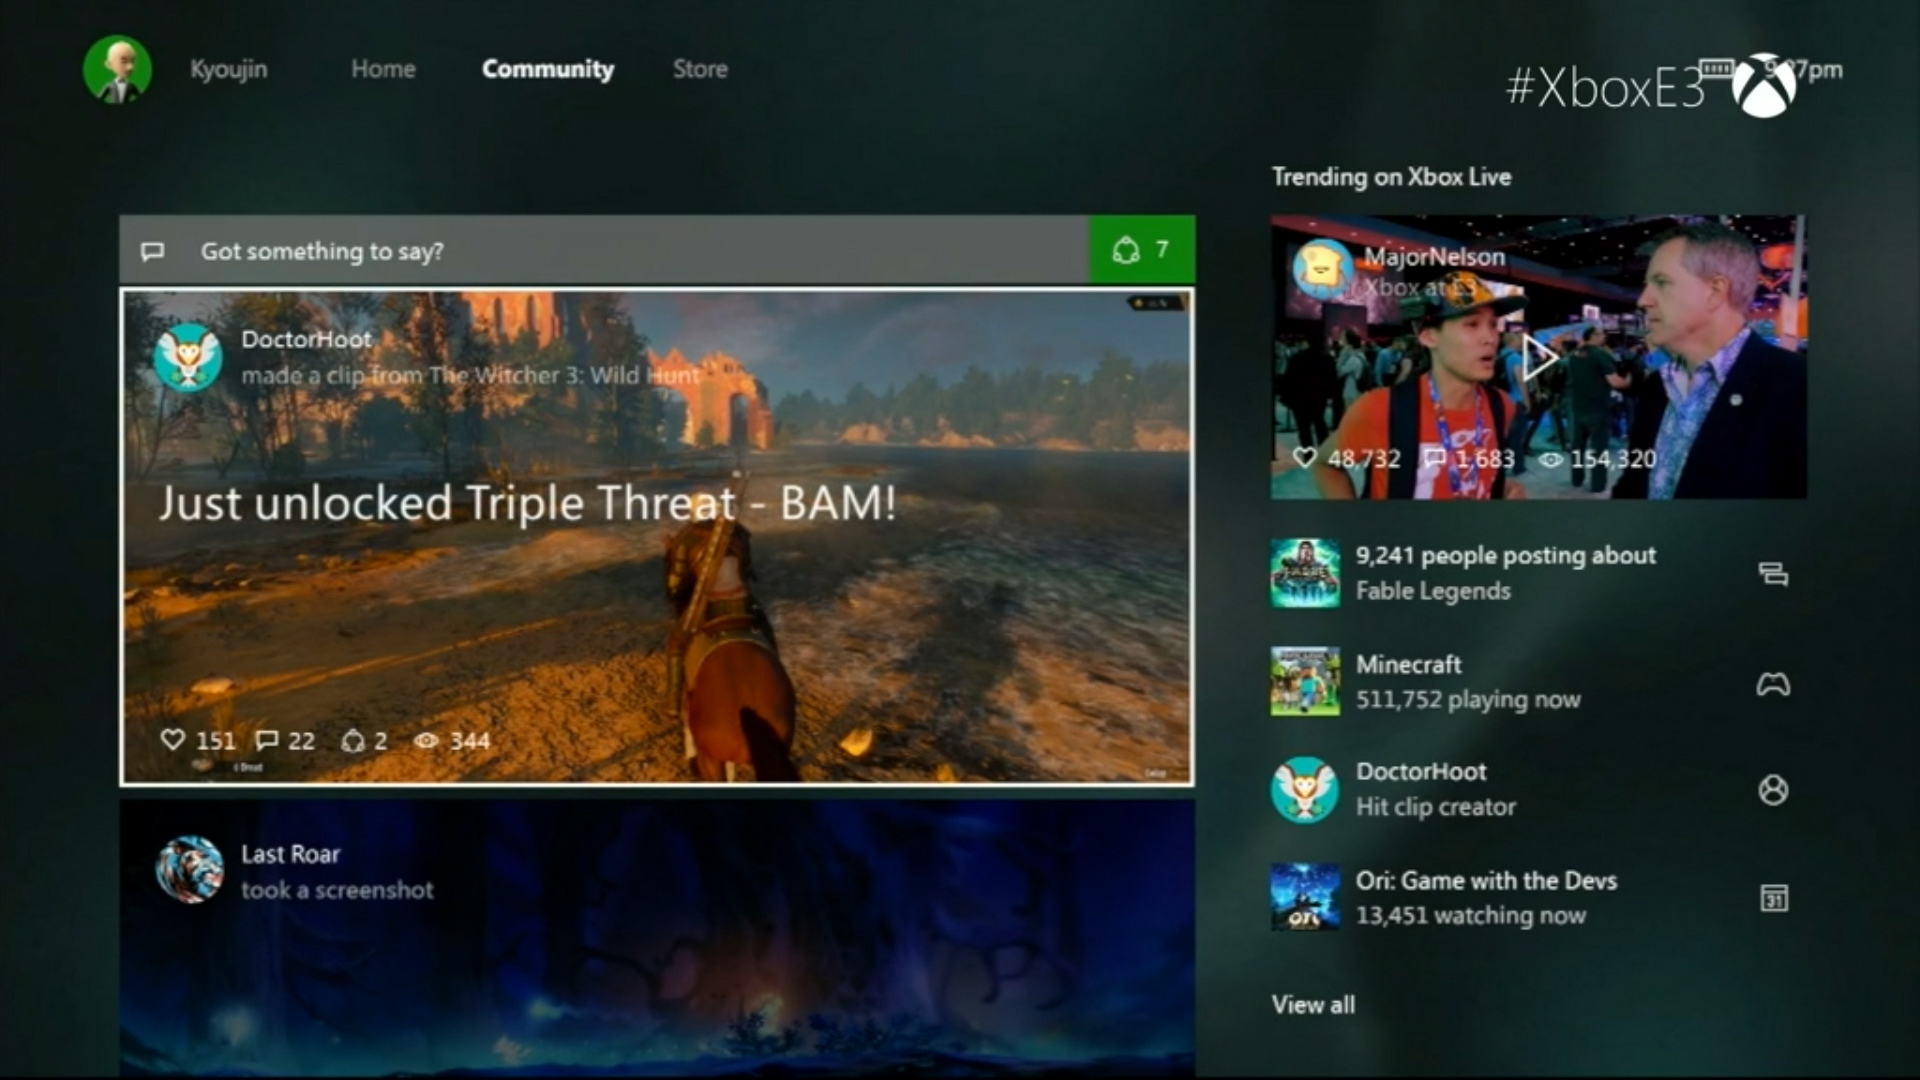 Xbox One New Dashboard User Interface Screens And Video Preview Released Quot It S Completely